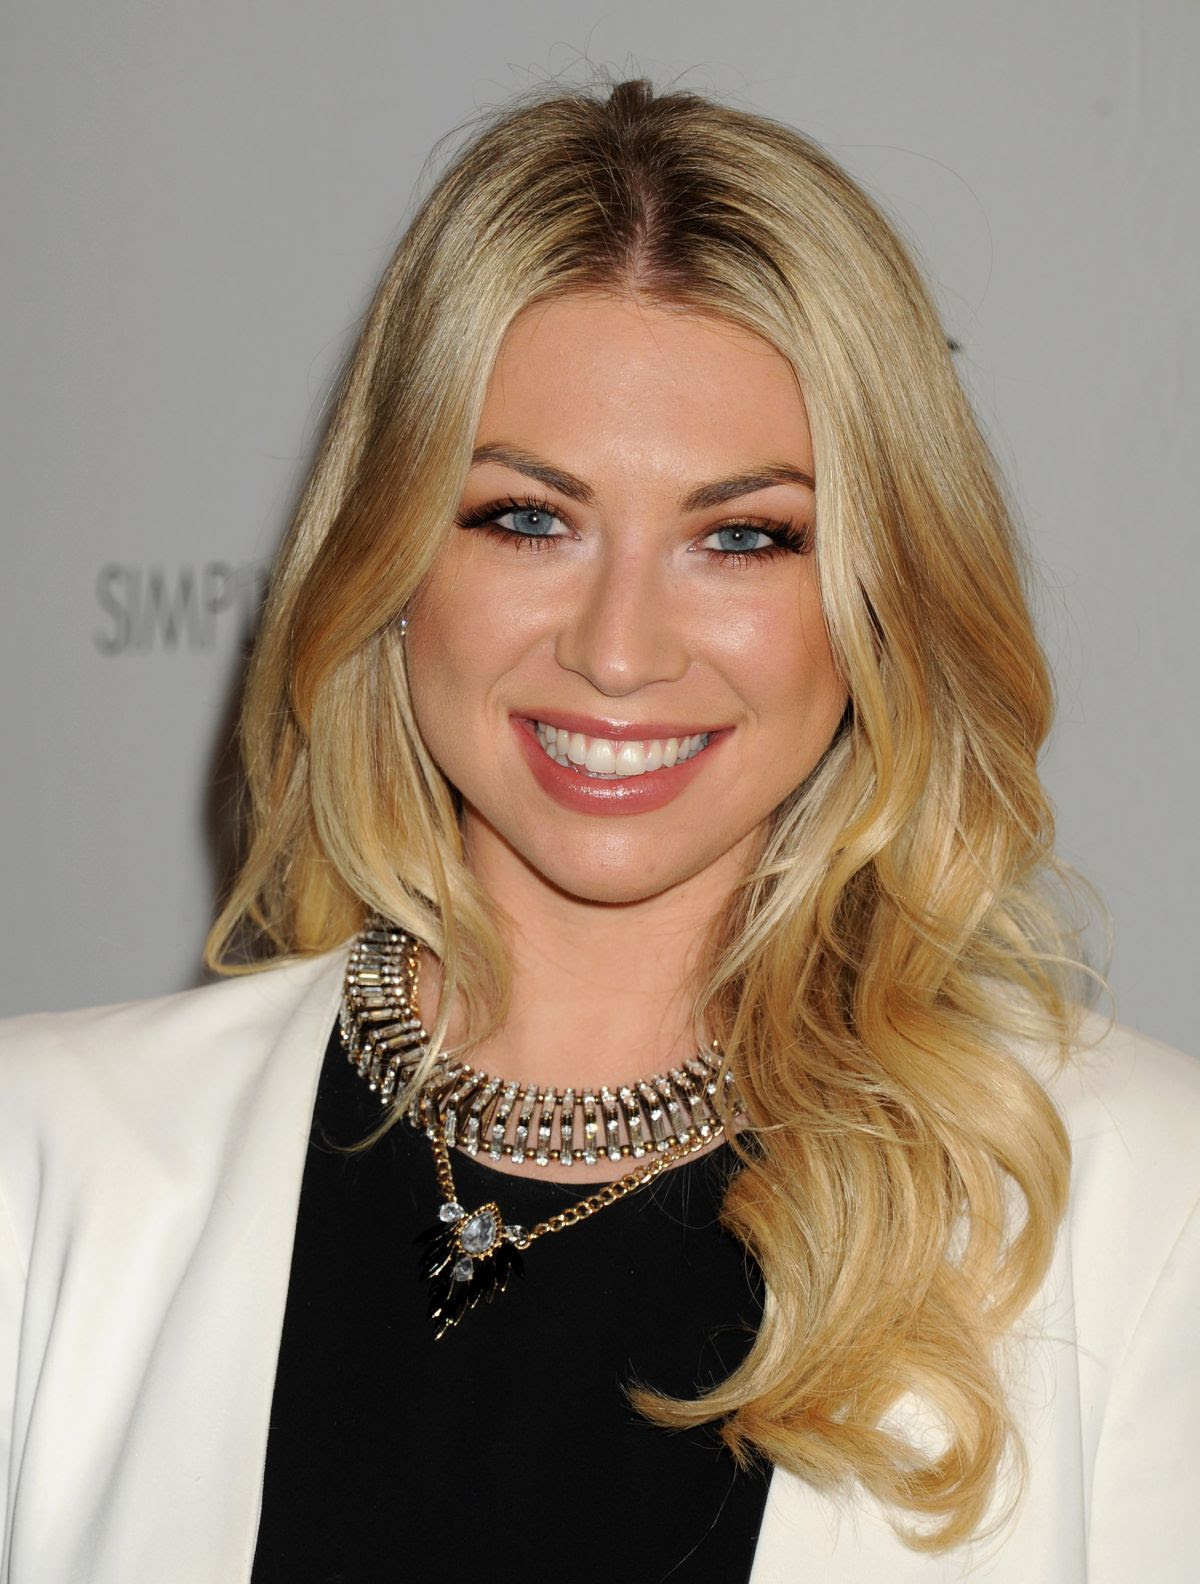 STASSI SCHROEDER at Simple Stylist Do What You Love! Conference in Los Angeles